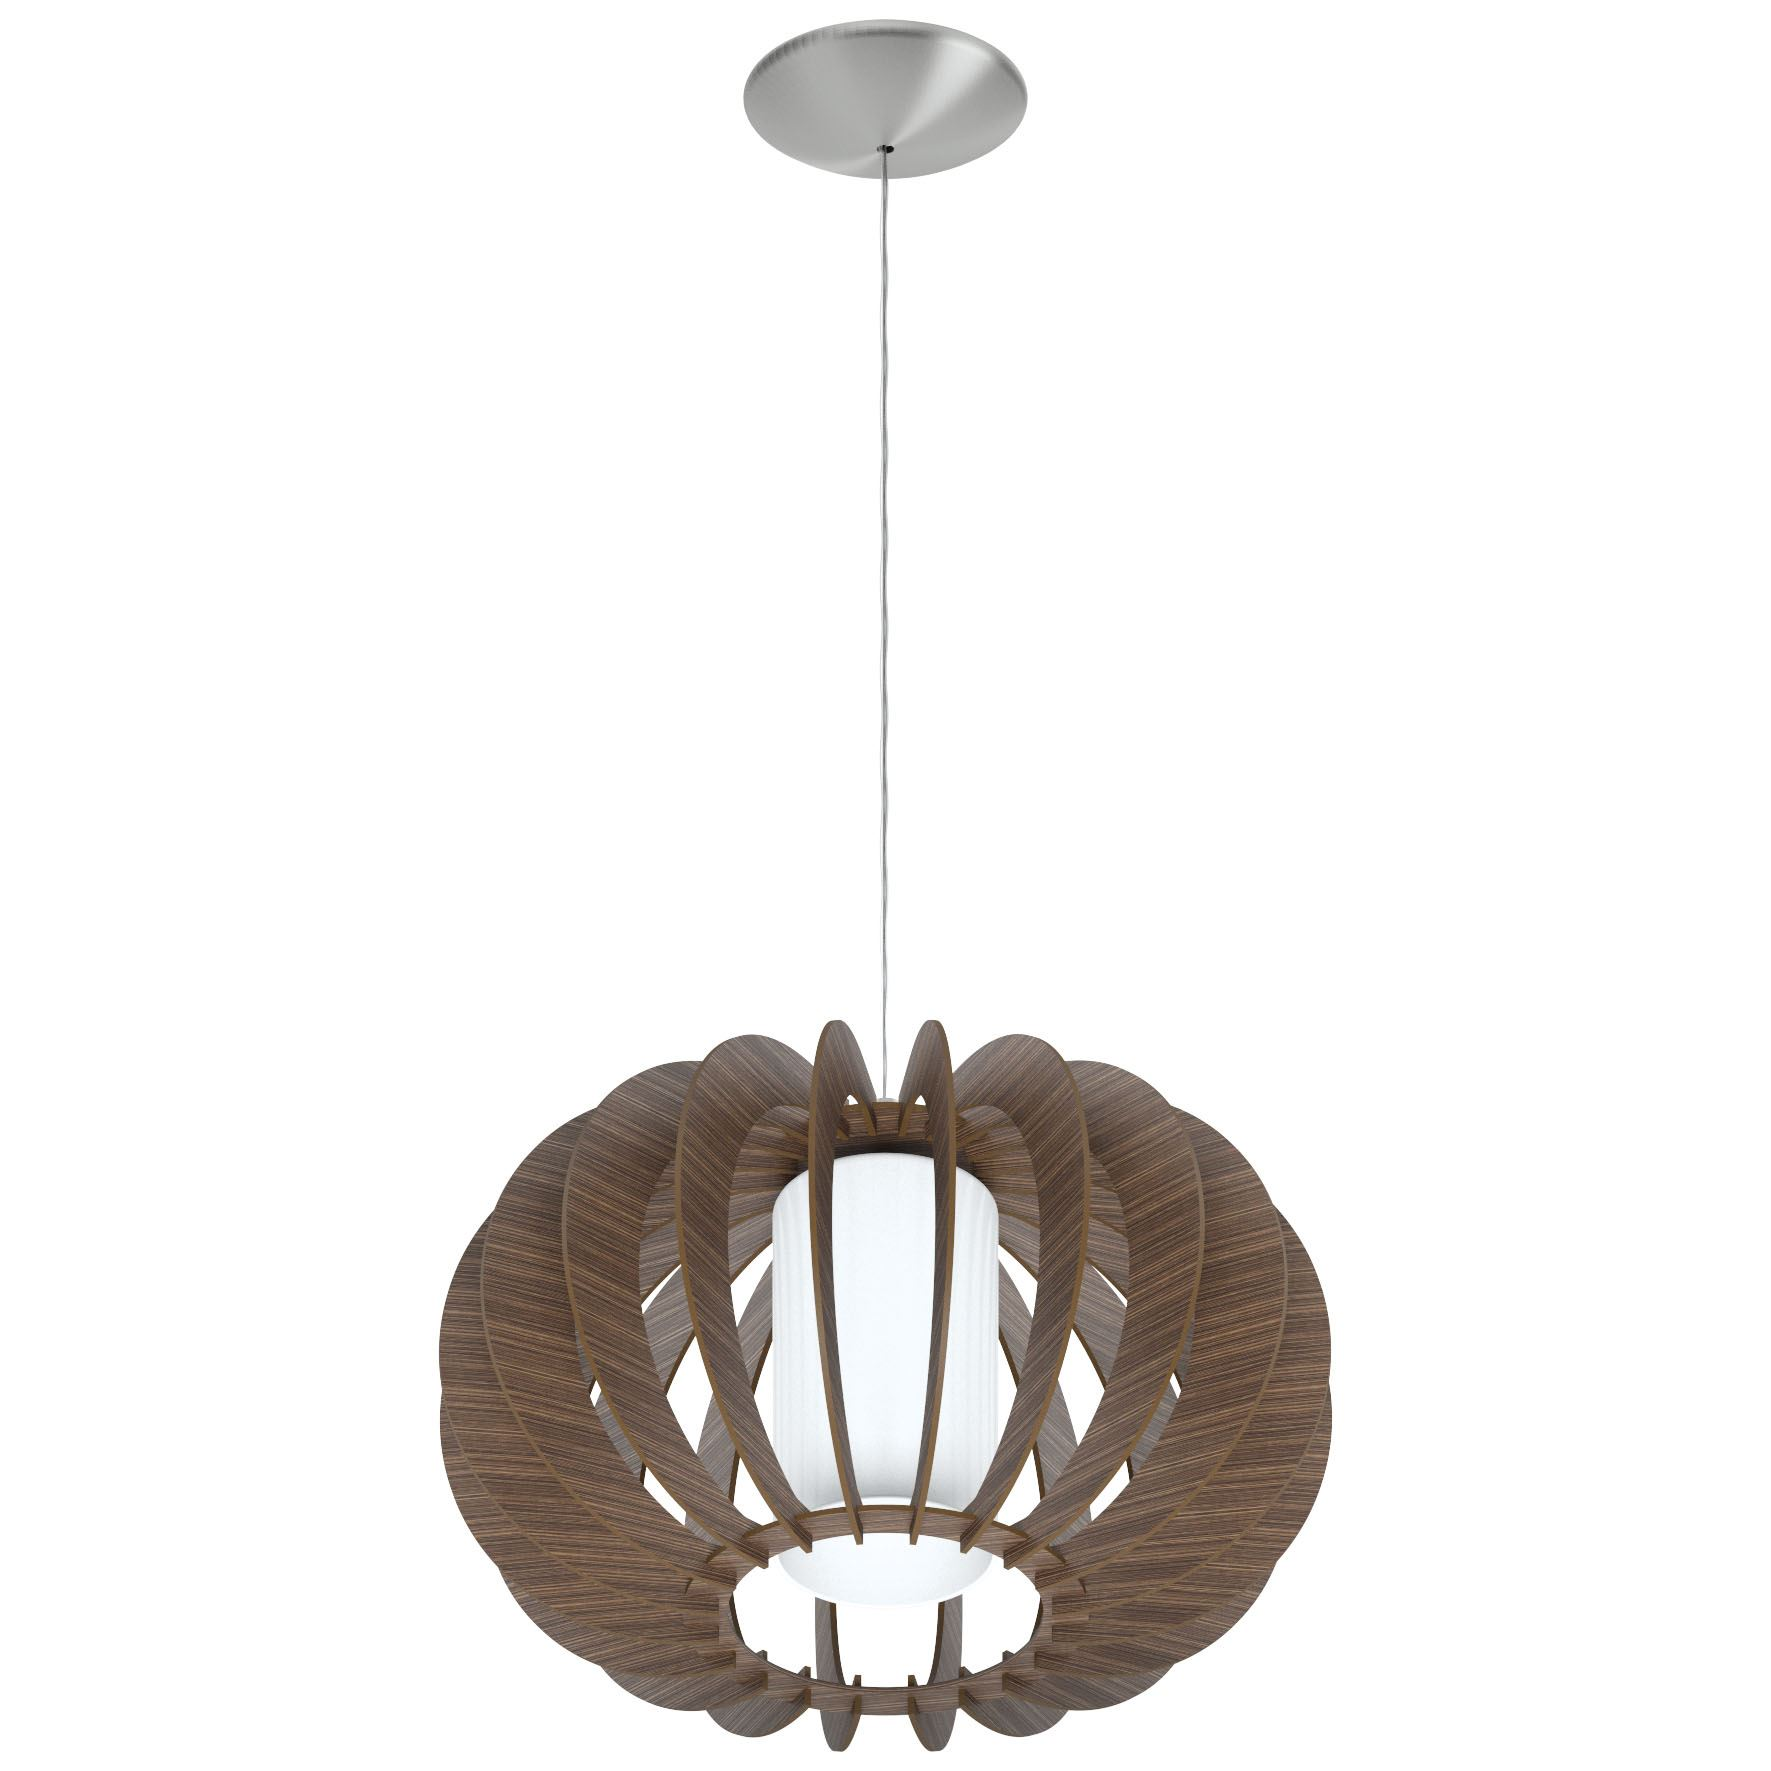 Stellato Steel Hanging Light Dia 400mm Wood Brown Glass White Shade